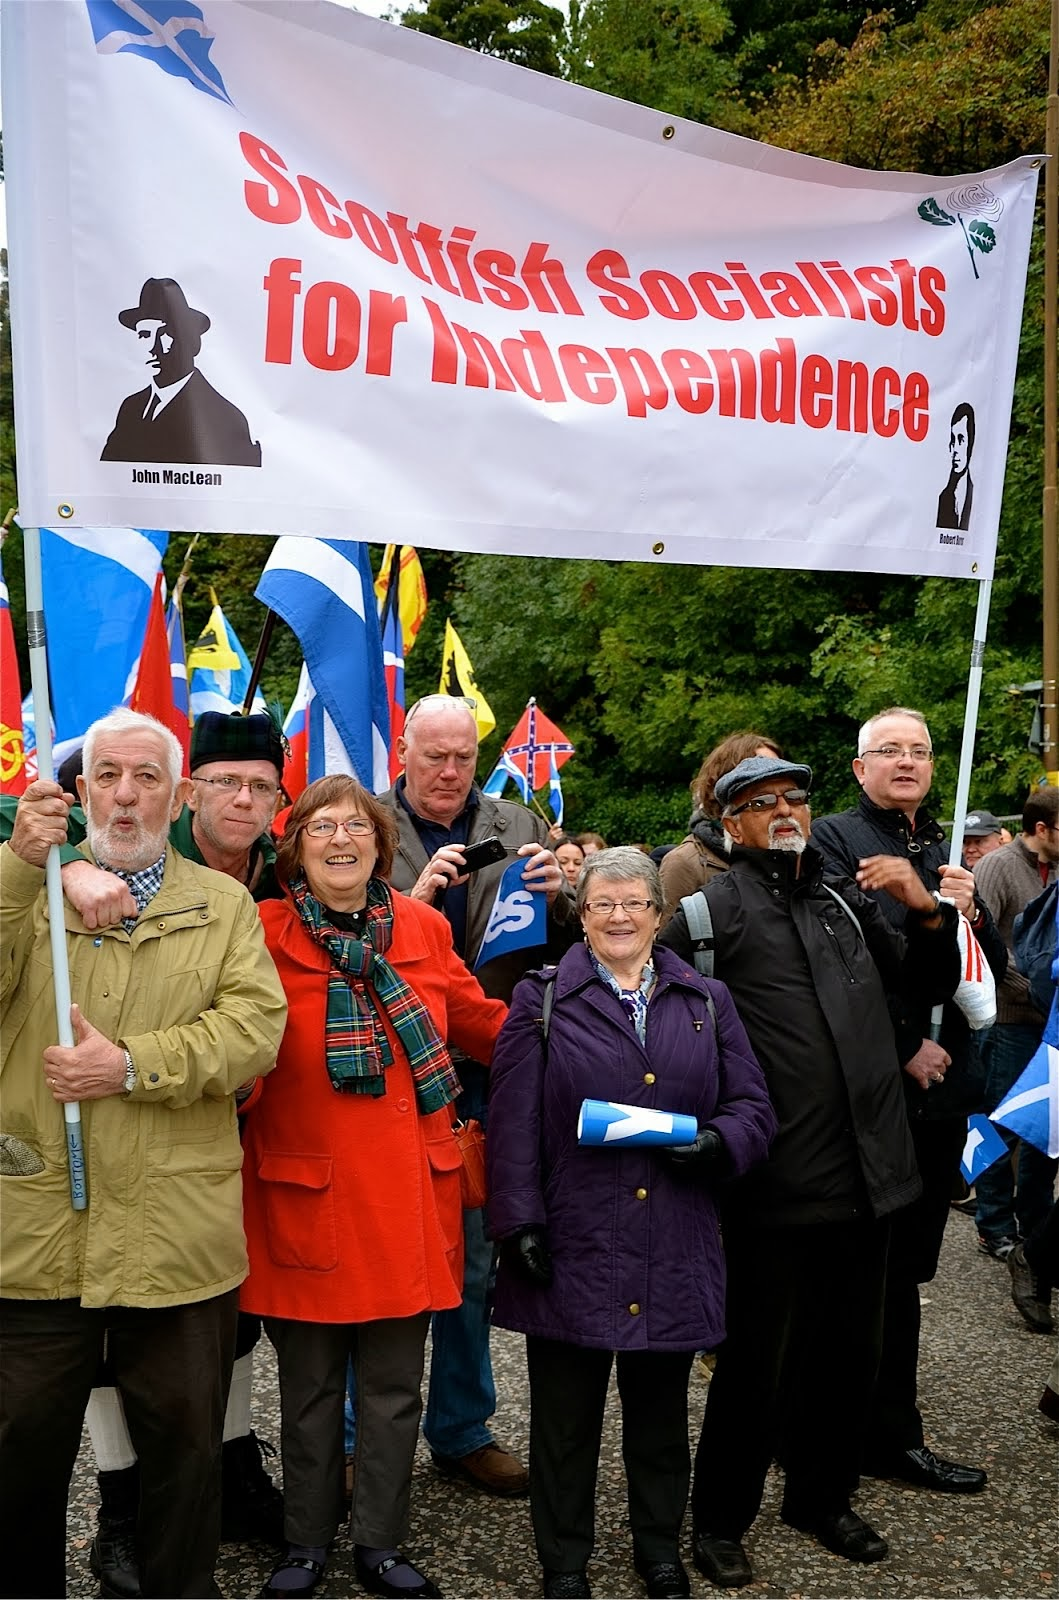 Scottish Socialists for Independence